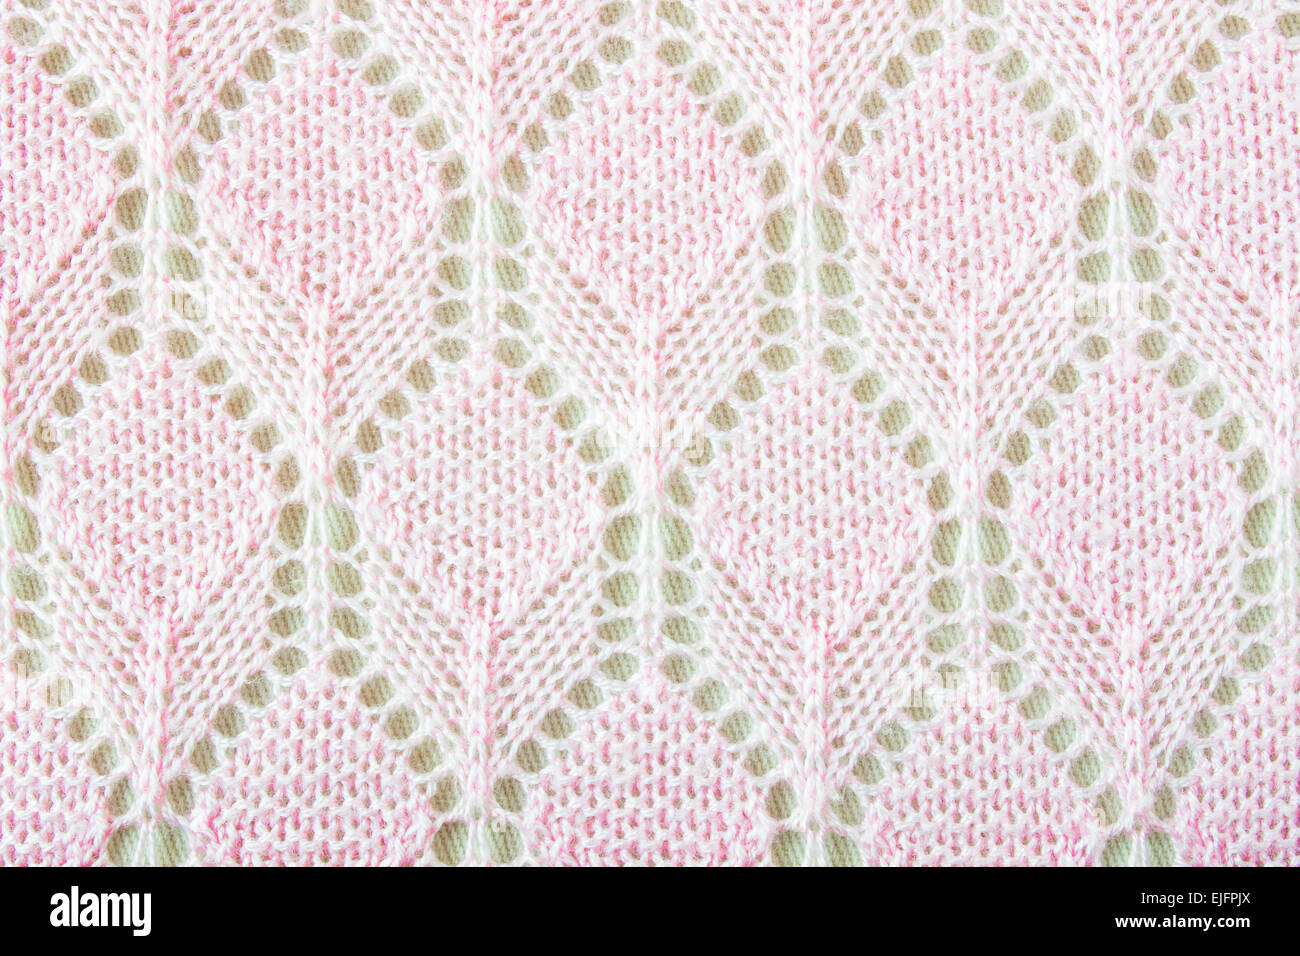 Crochet Cloth Stockfotos & Crochet Cloth Bilder - Alamy